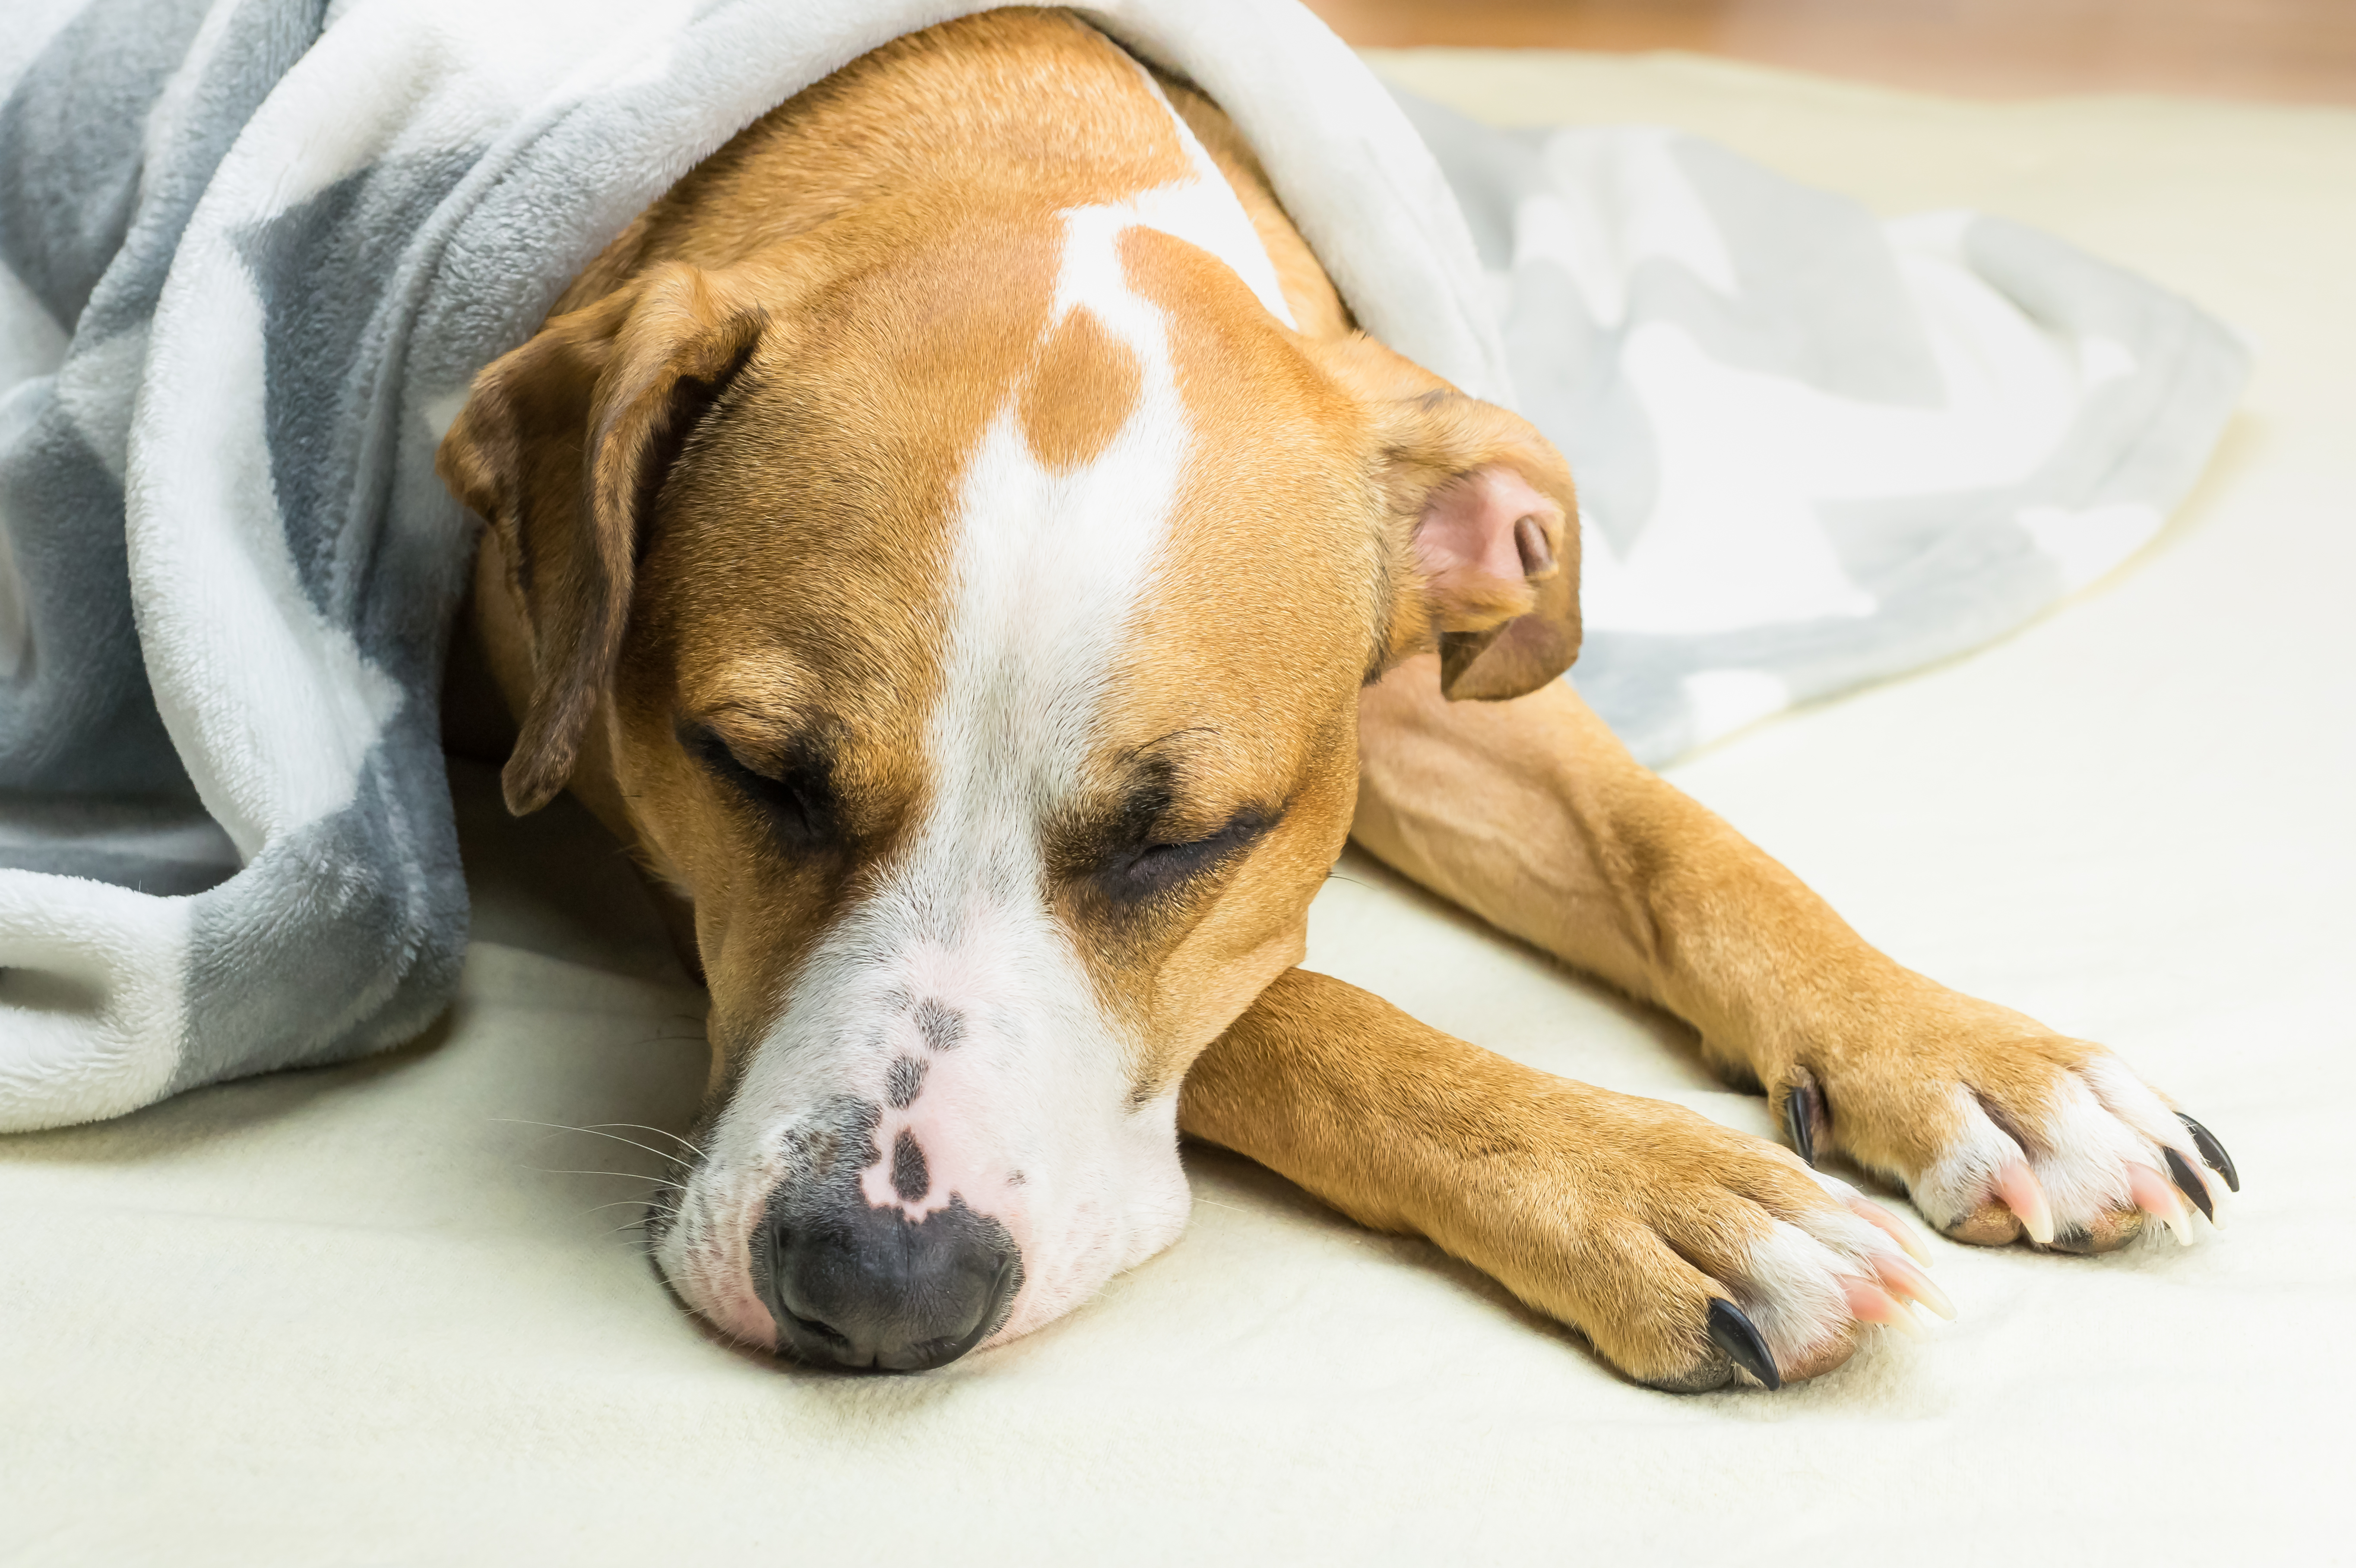 bigstock-Lazy-Or-Sick-Pet-Dog-Relaxing--232234681